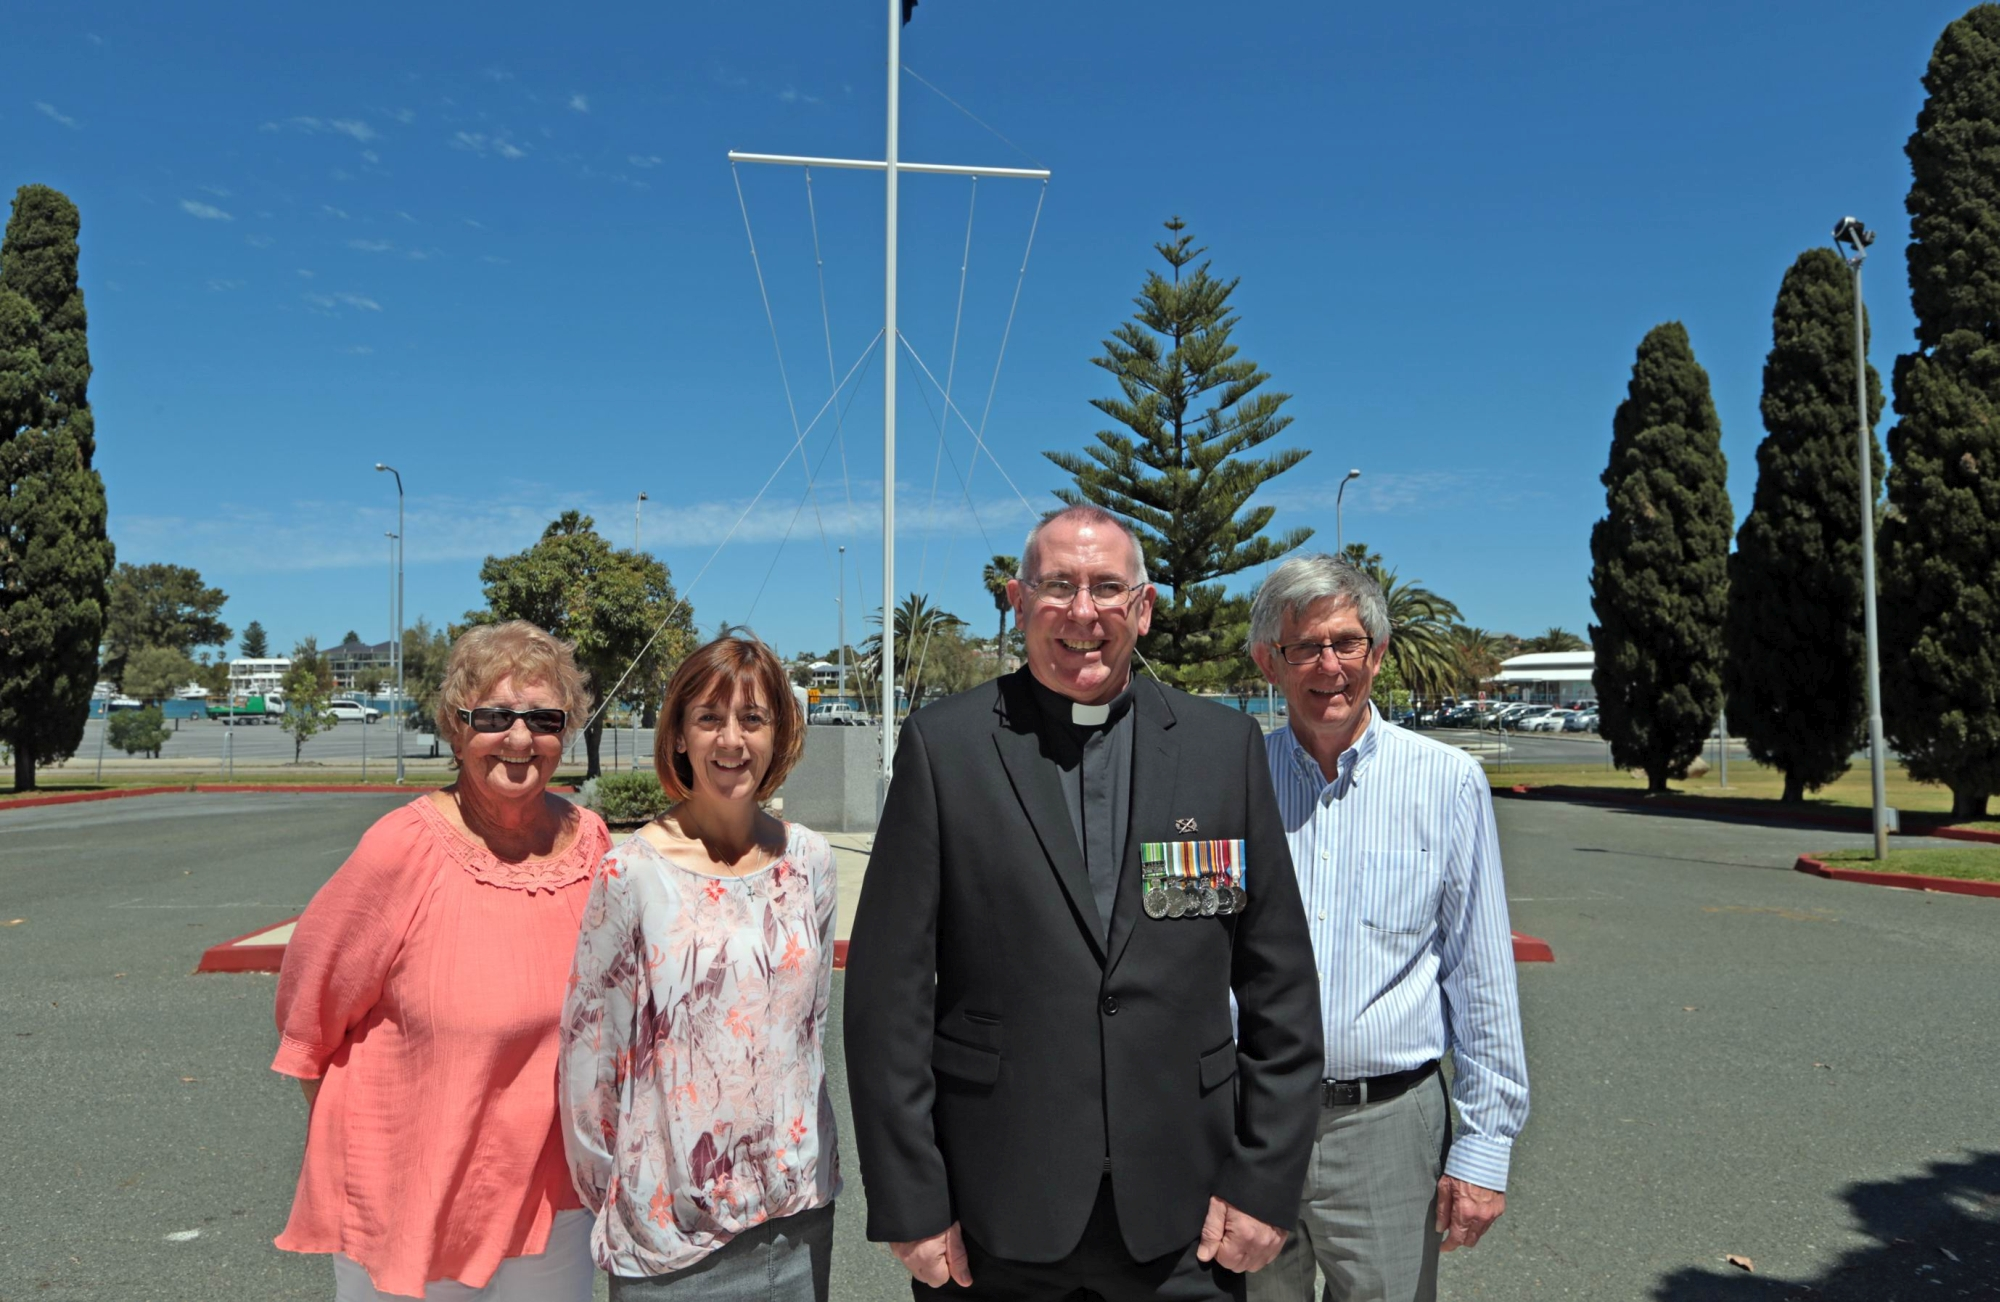 Marlene Robins and Sue Sambridge from Legacy with chaplain Andrew McNeill and Roger Munt from Perth Discovery Choir.